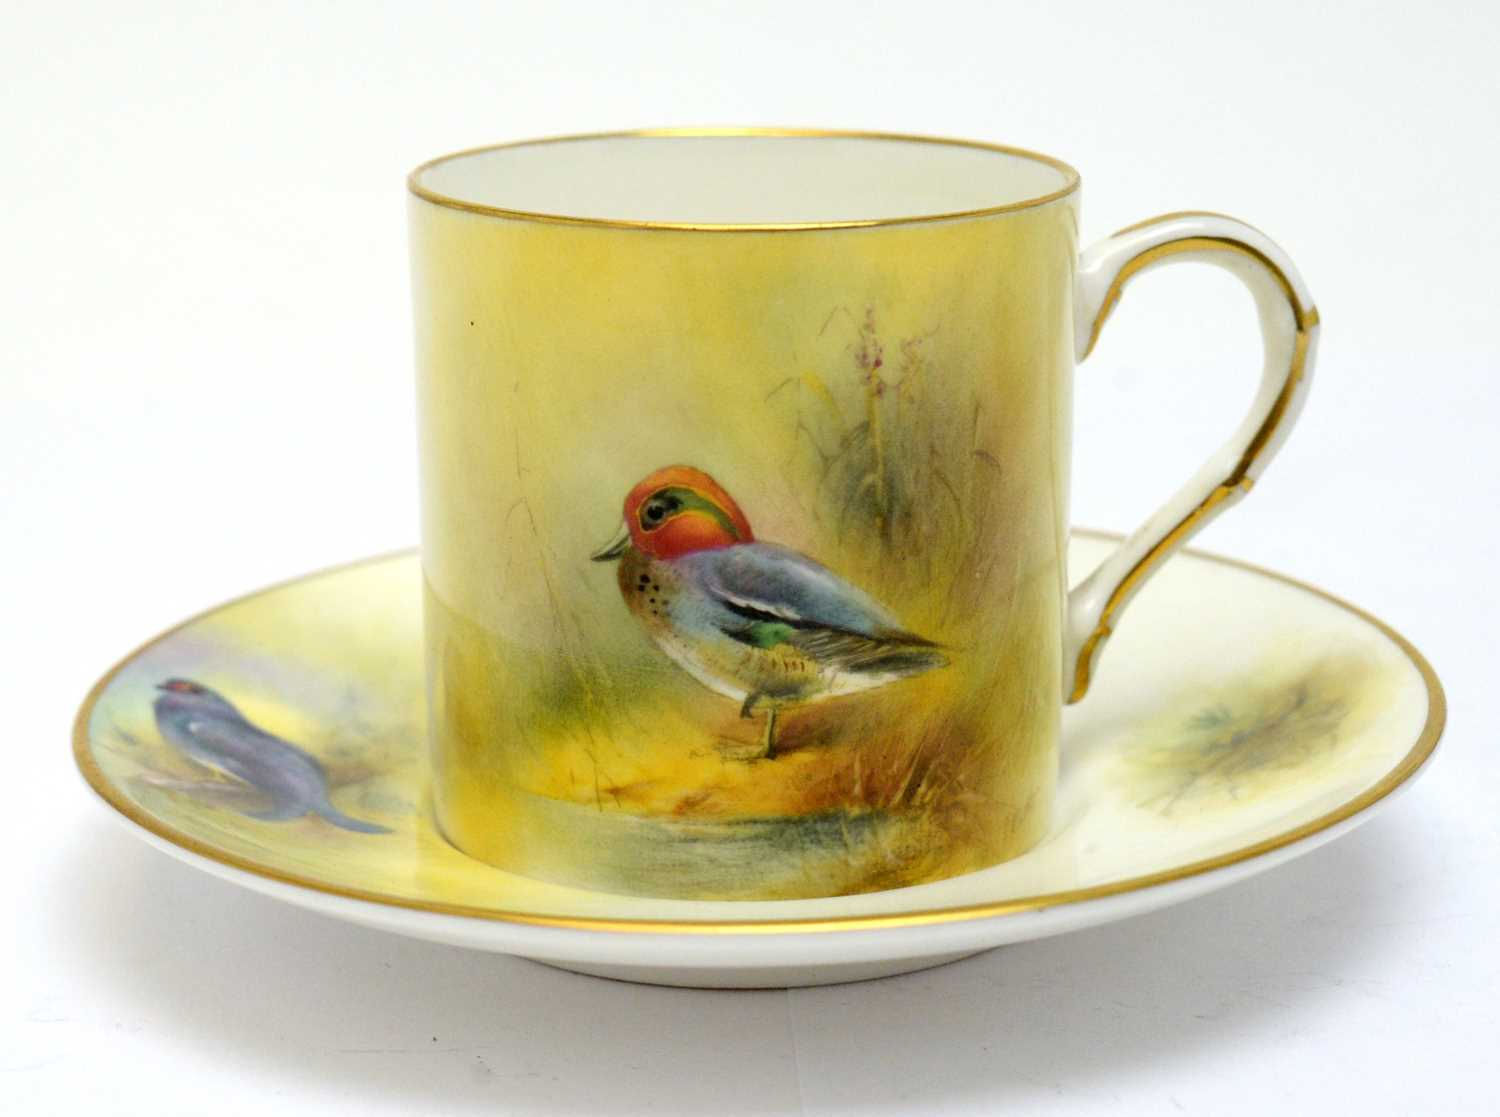 Six Royal Worcester coffee cans and saucers with game birds by Peter Platt - Image 4 of 4